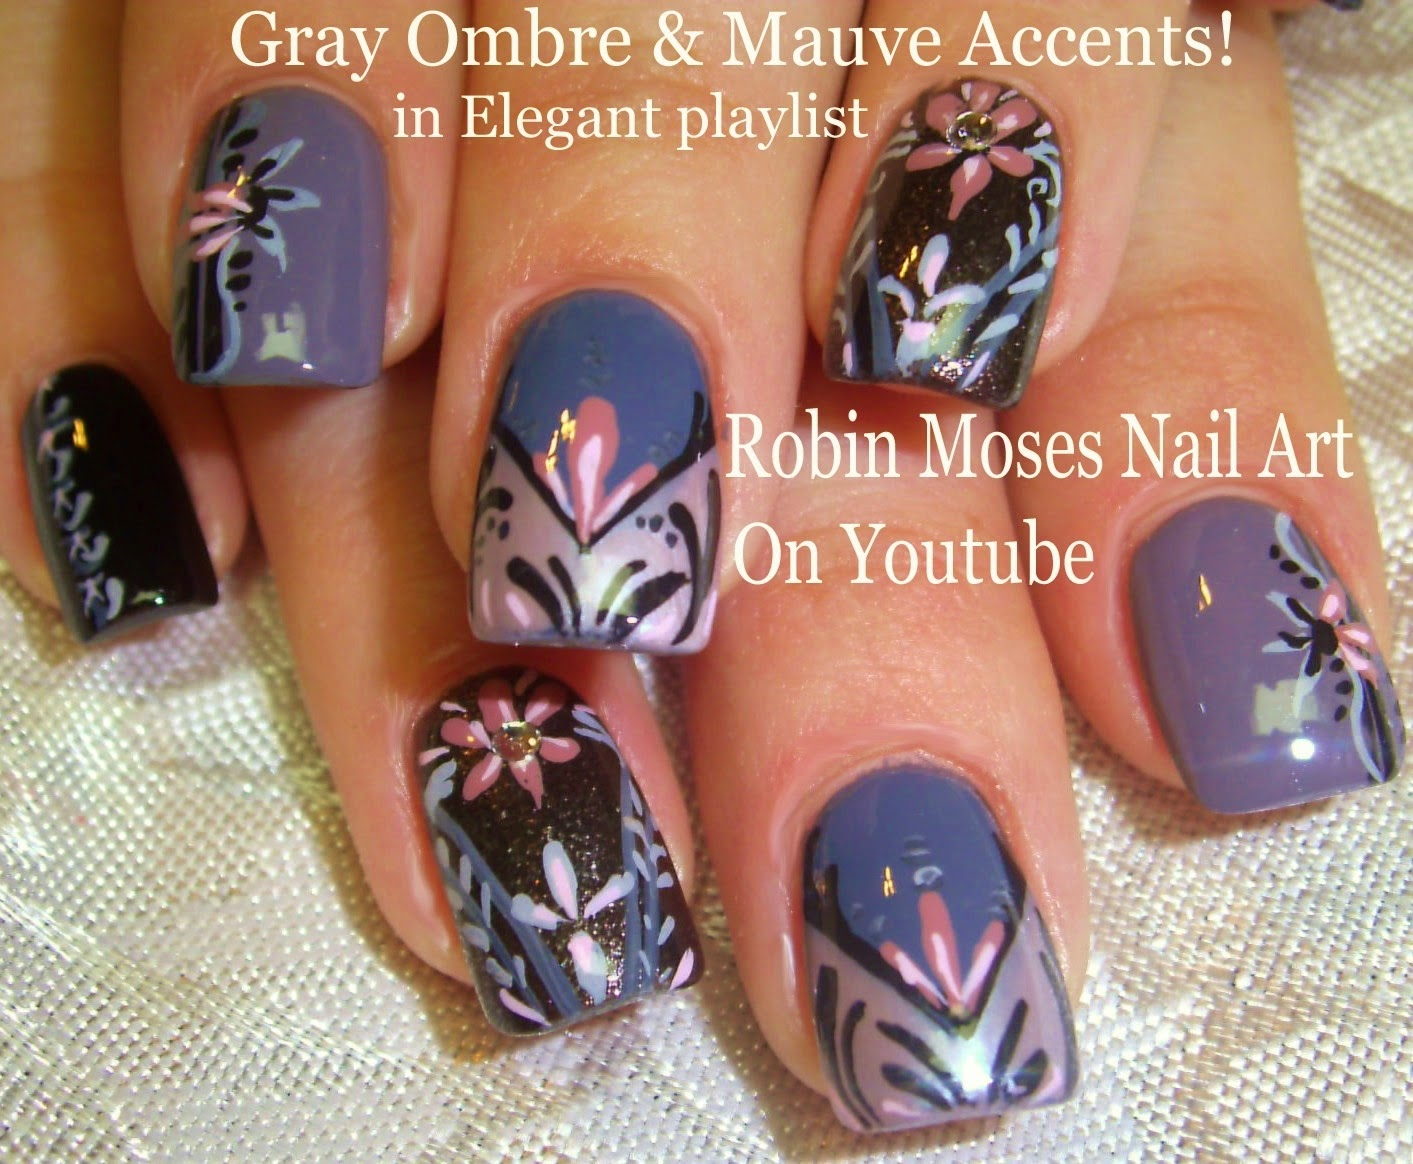 Robin moses nail art pink and gray winter nail trends nail pink and gray winter nail trends nail art 2014 nails filigree nail art elegant nail art winter nails 2014 pink and gray nails silver and prinsesfo Choice Image